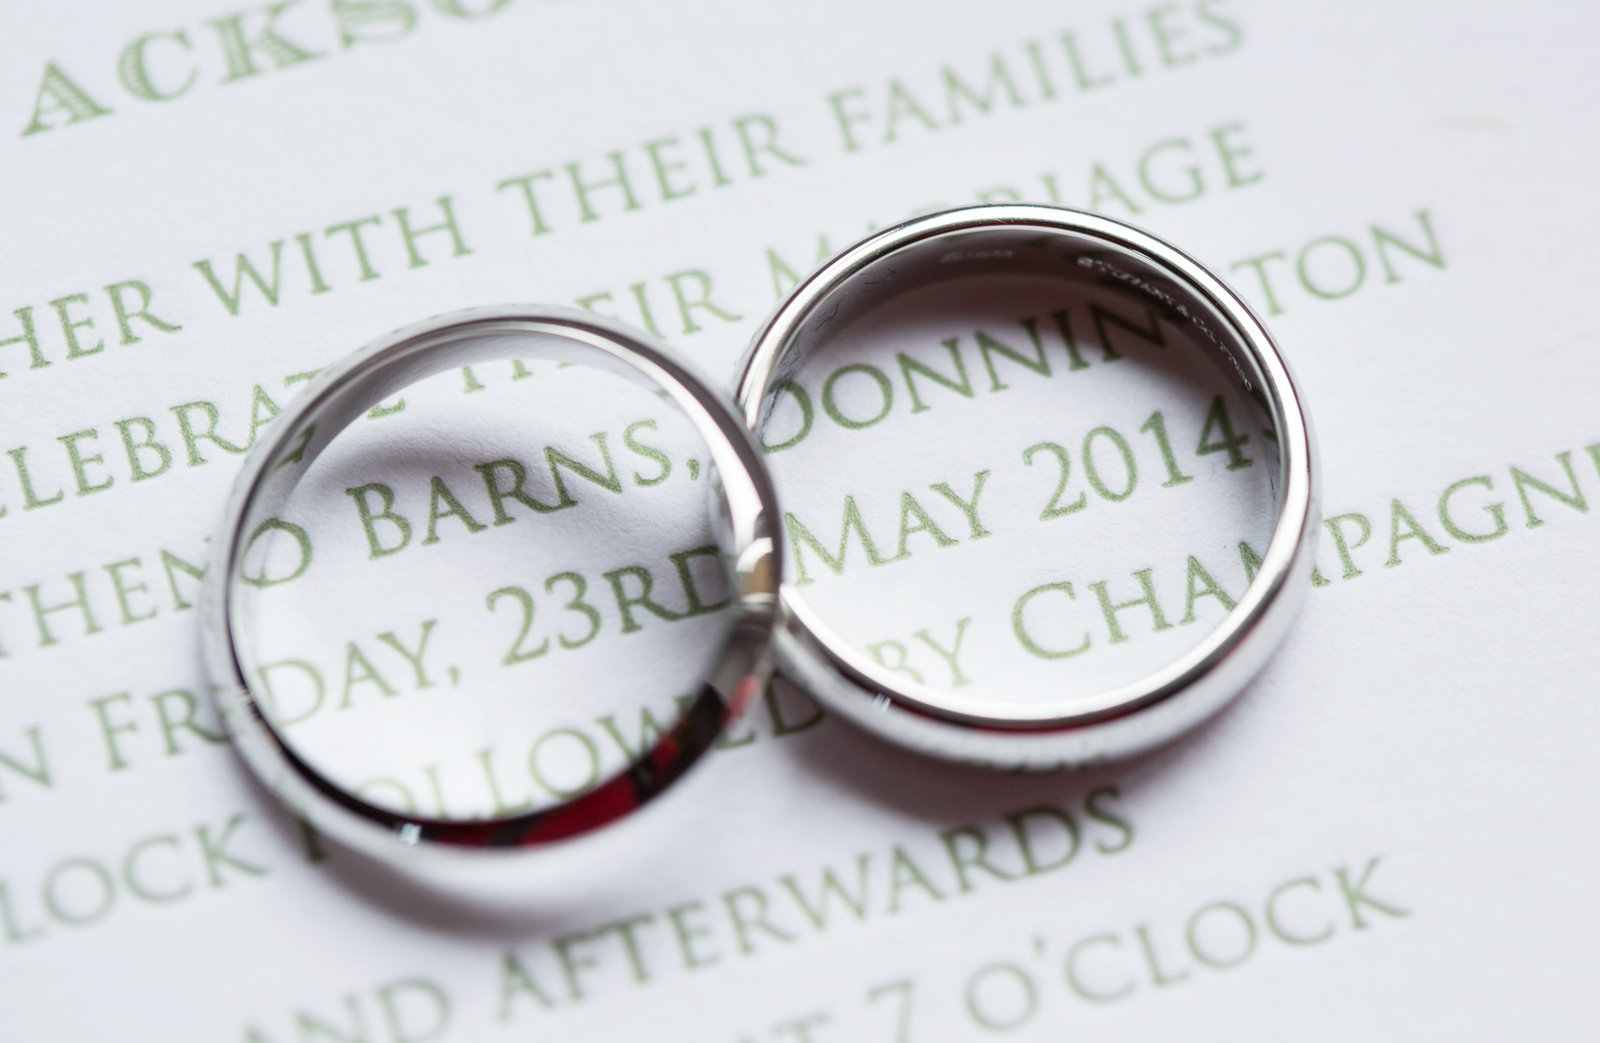 adorlee-0076-southend-barns-wedding-photographer-chichester-west-sussex